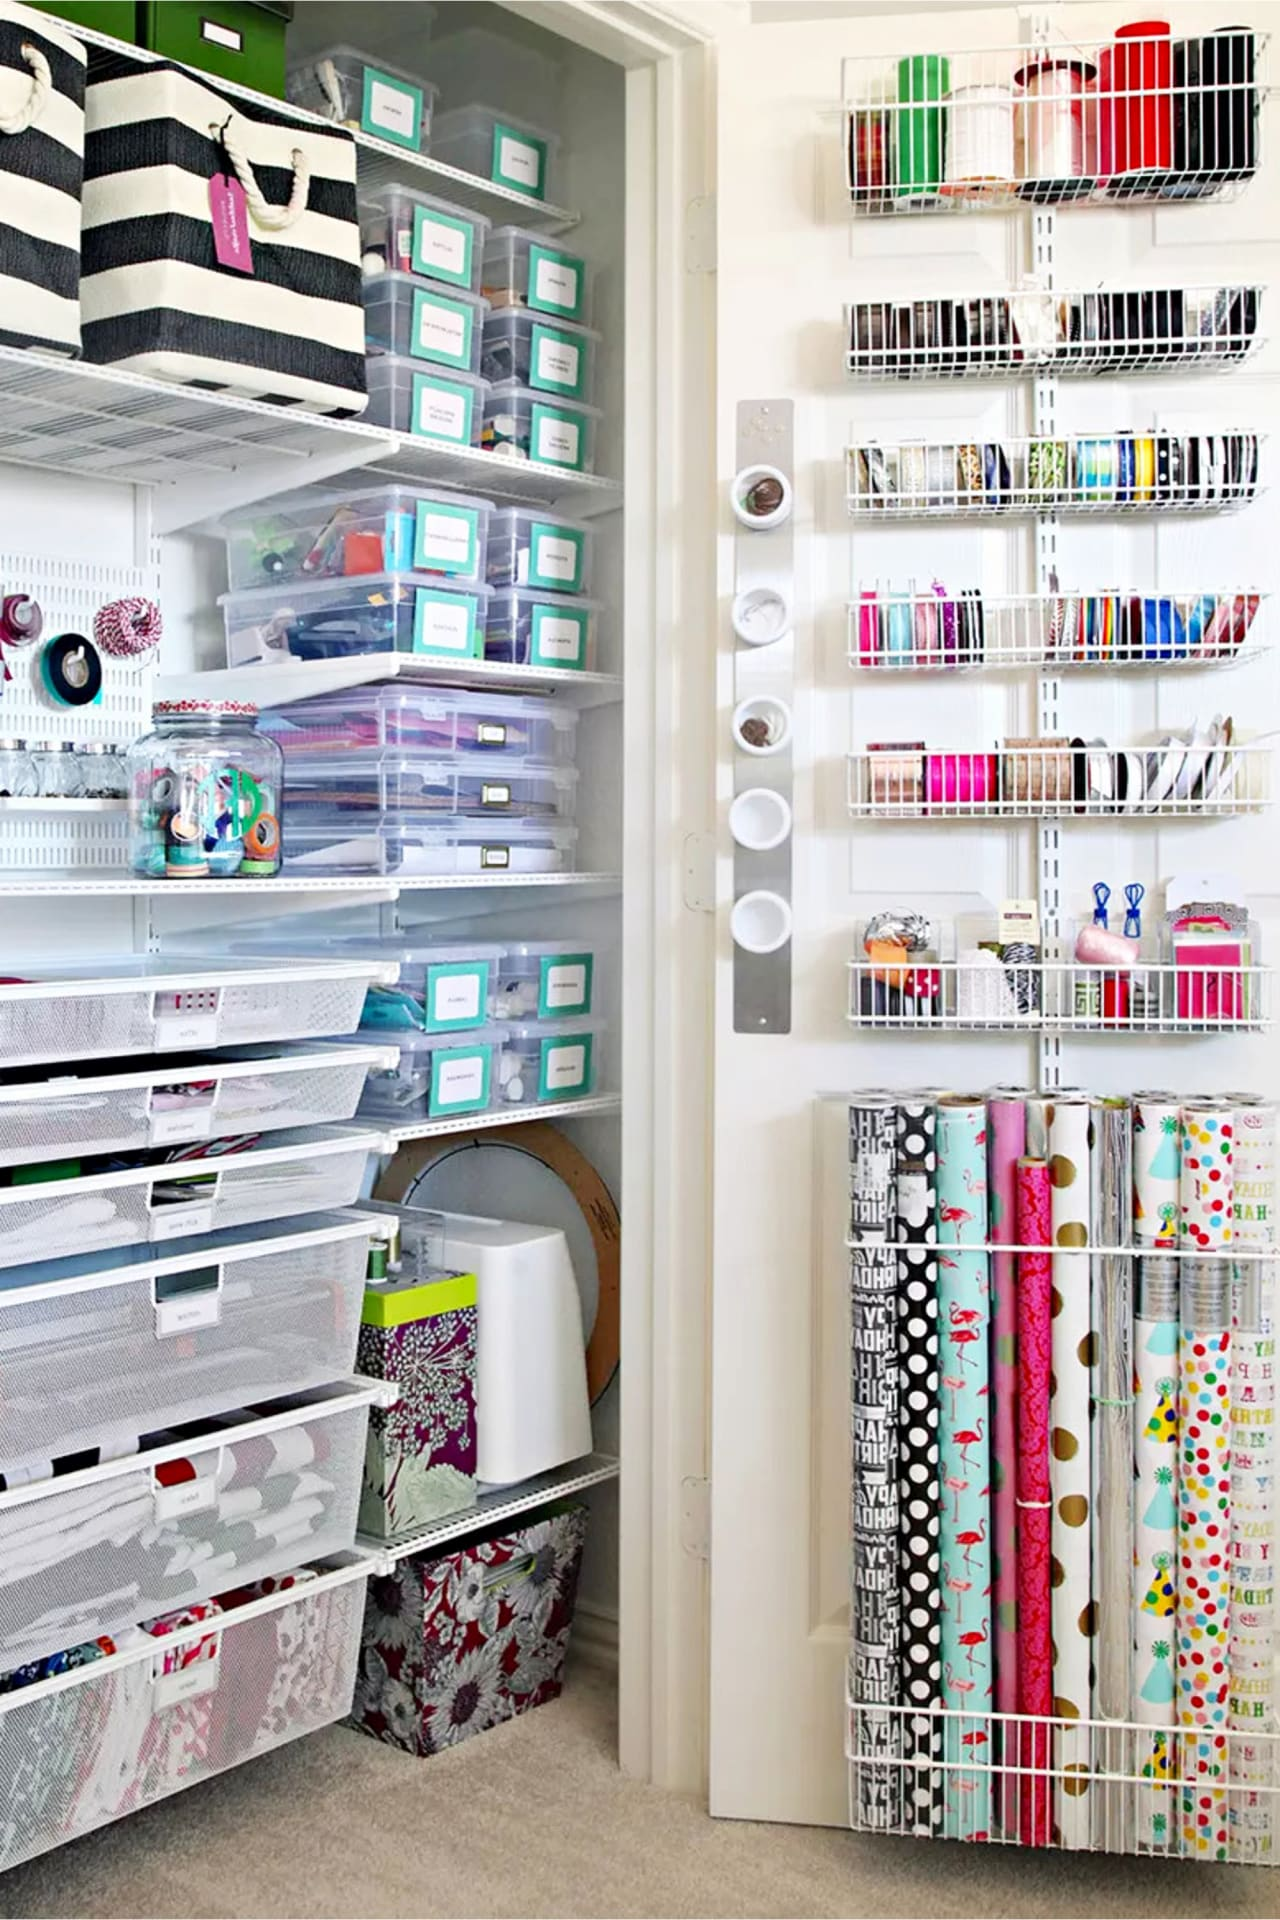 Craft room organization ideas on a budget - Dollar Store craft room closet organizing ideas for creative craft supplies sotrage even in small spaces - DIY craft room organization ideas on a budget and more creative craft room ideas